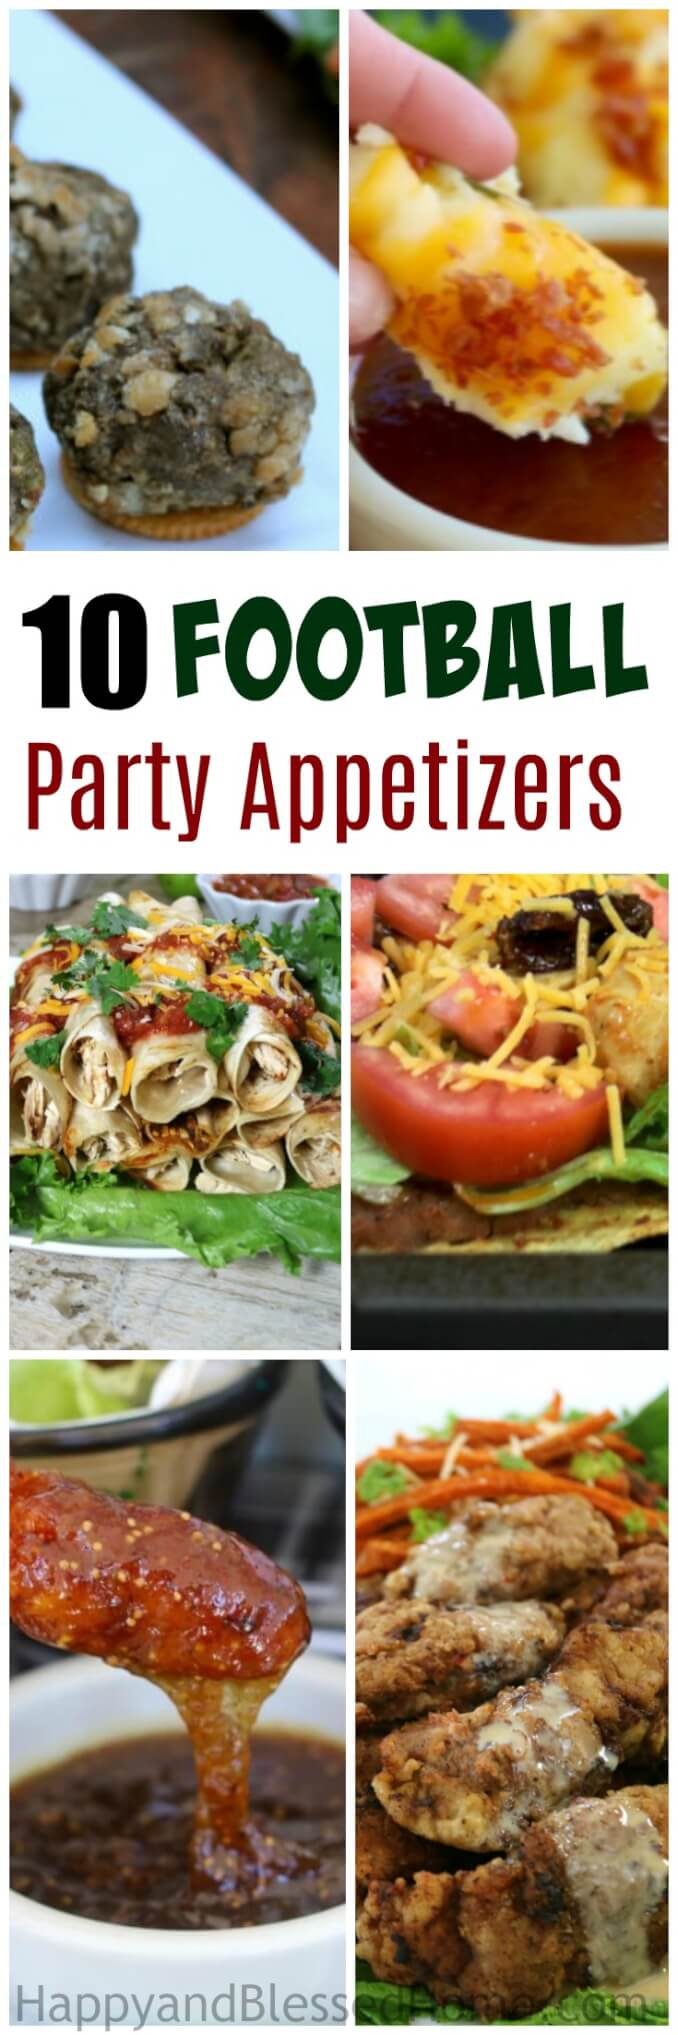 10 Football Party Appetizers including finger foods, dips, sauces and chocolate football pops